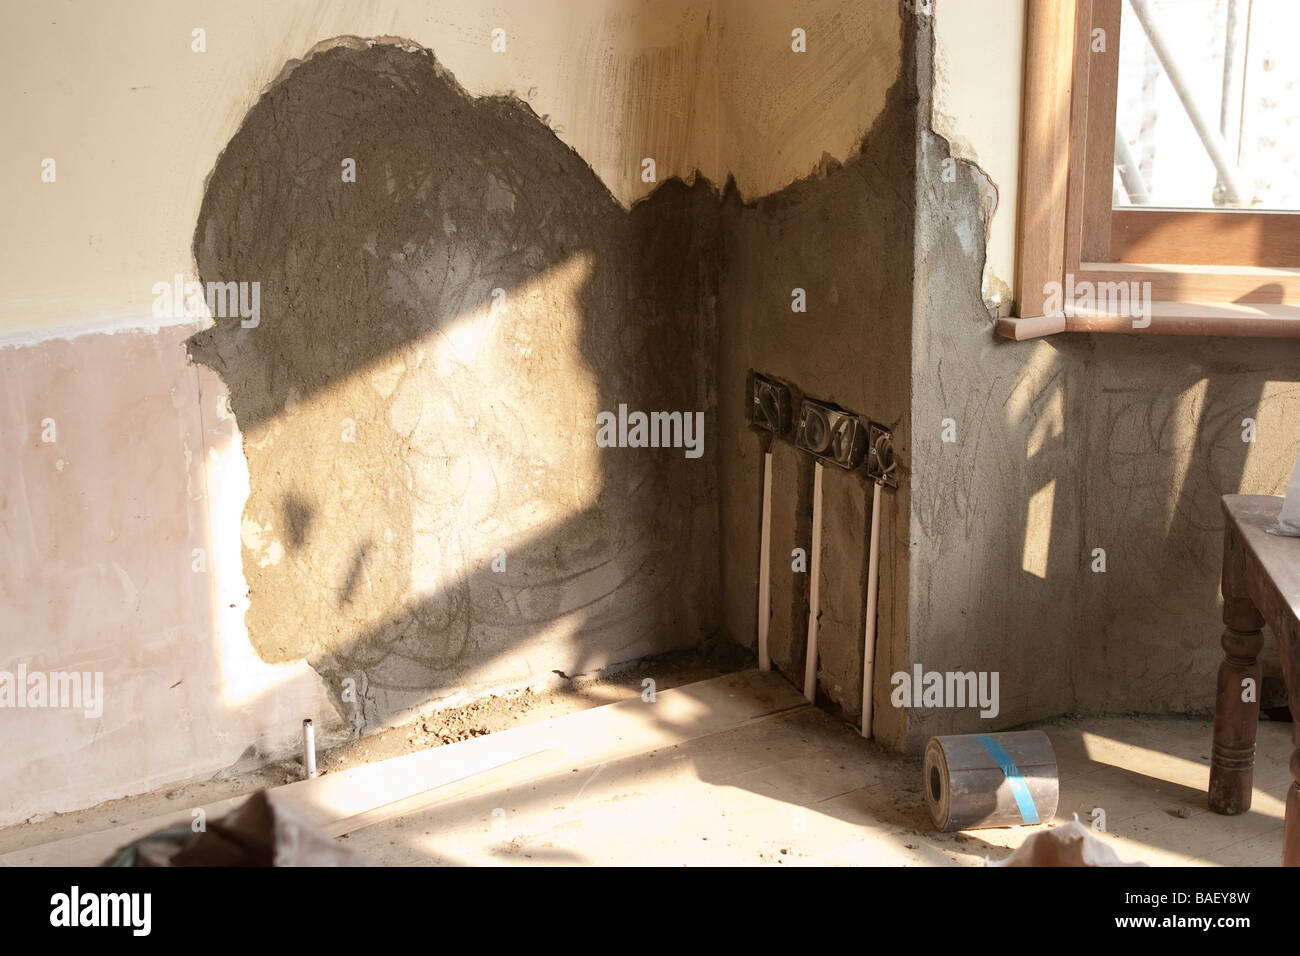 Wall Without Plaster Stock Photos Rewiring An Old House Walls A Replastered Bay Window In Being Renovated Rewired Image